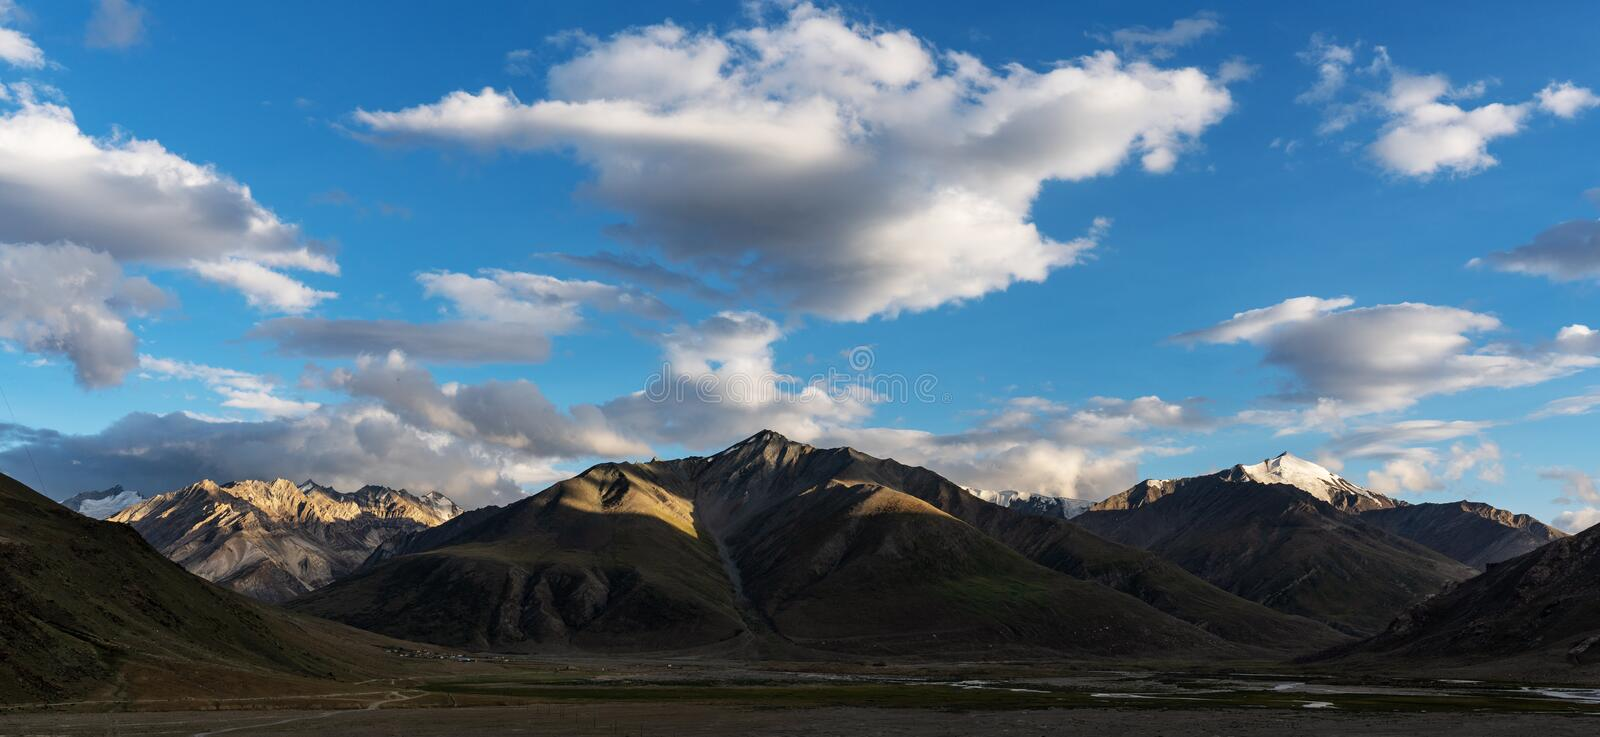 Panoramic mountain landscapes with blue sky and white clouds at Zanskar valley in northern India royalty free stock photo